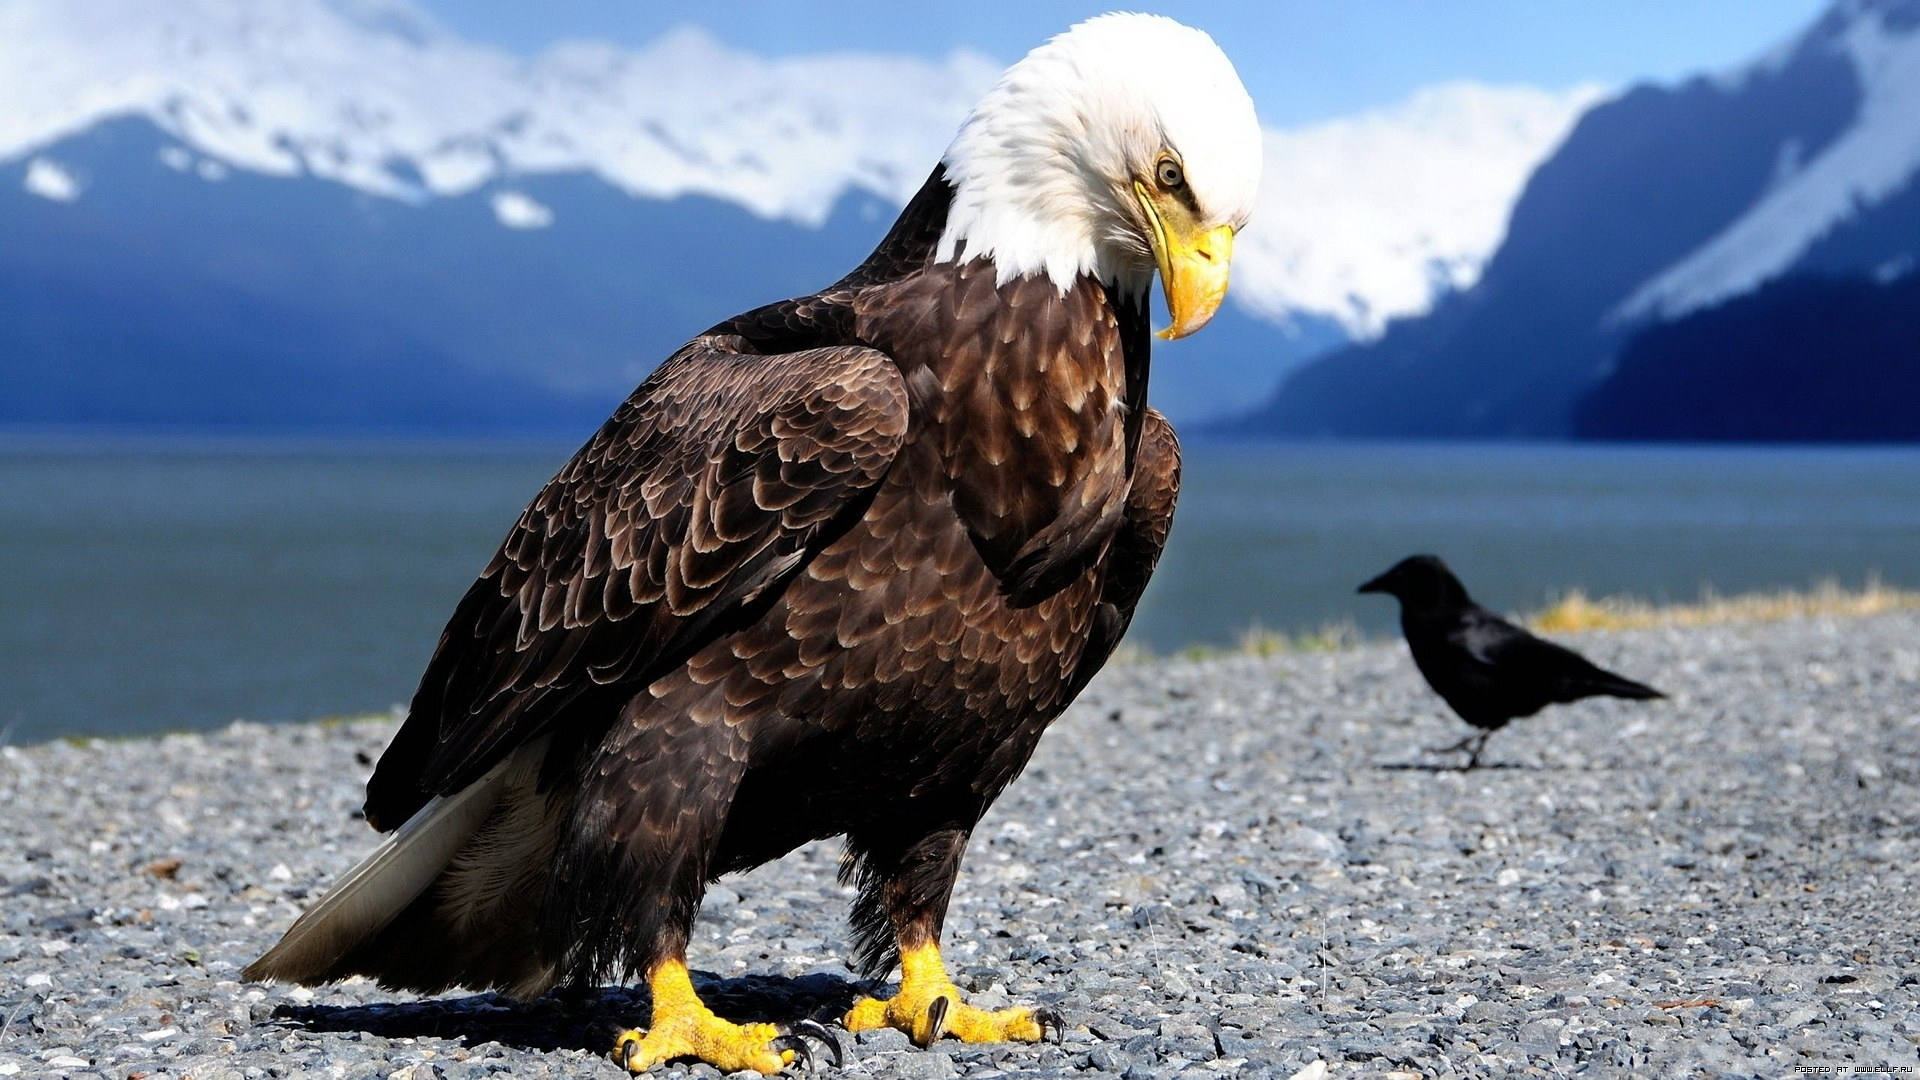 50273 download wallpaper Animals, Birds, Eagles screensavers and pictures for free